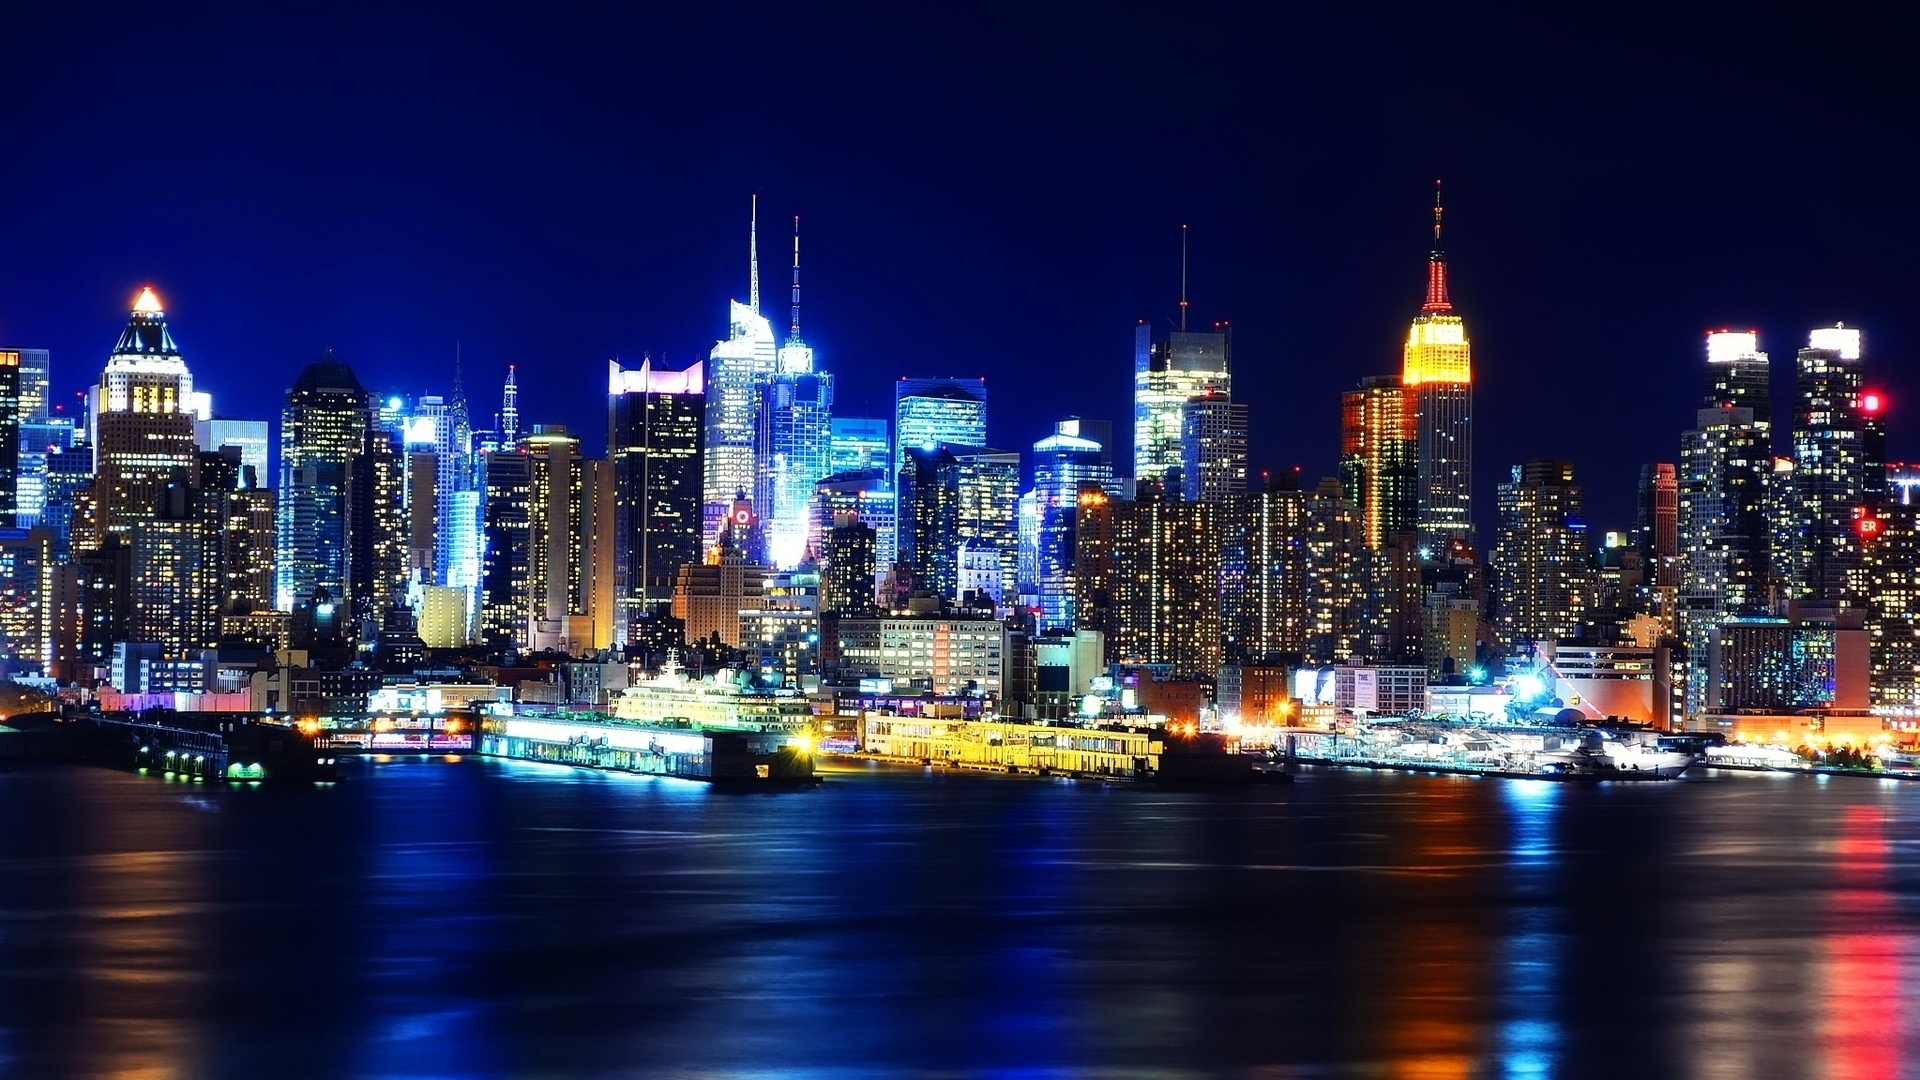 new-york-city-night-lights-hd-wallpapers - magiclub voyages